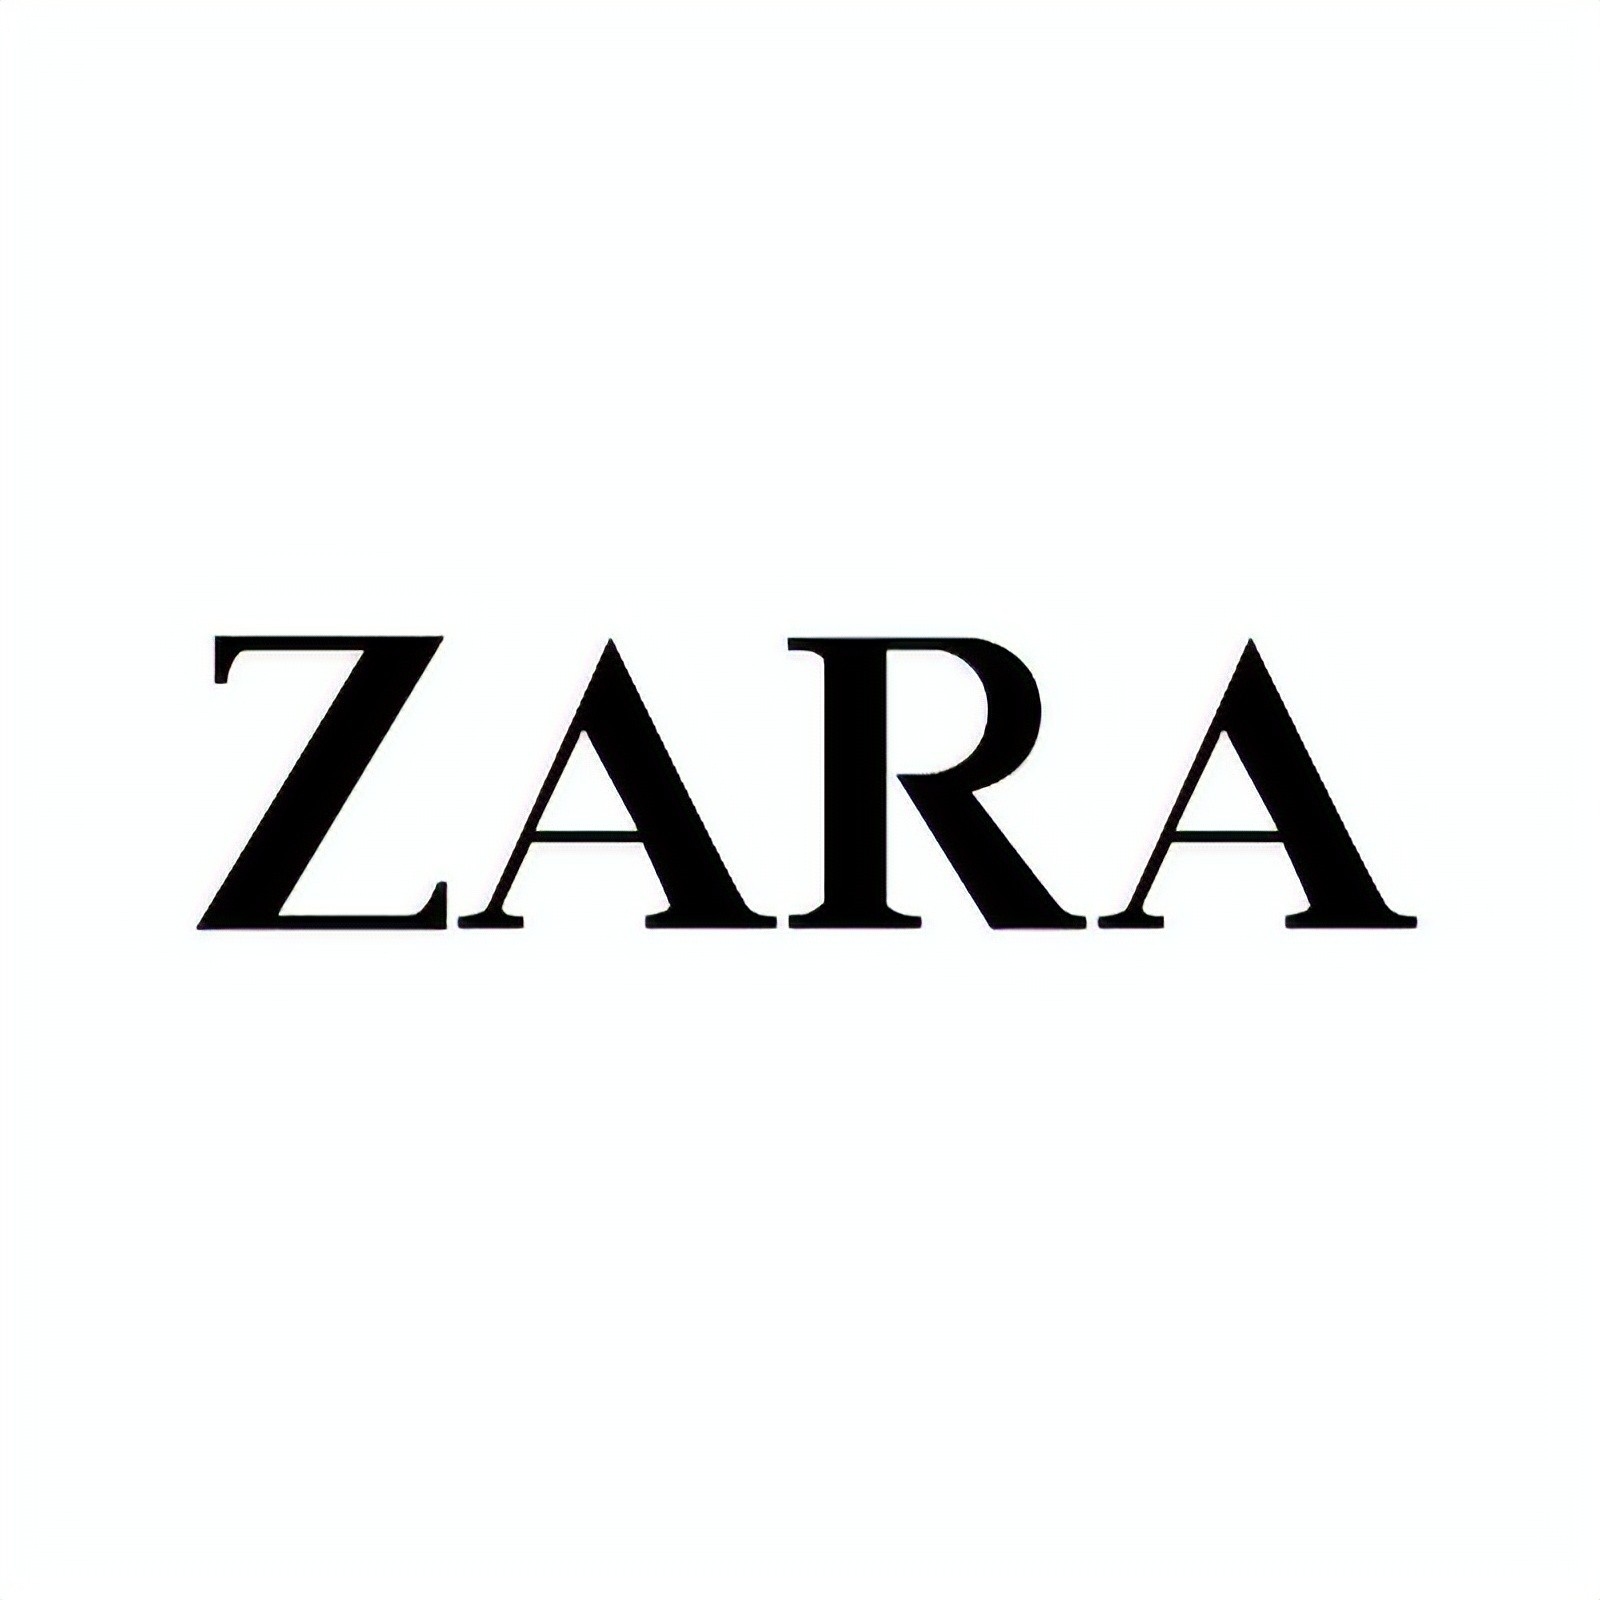 Save with these Zara voucher codes valid in December Choose from 8 verified Zara vouchers and offers to get a discount on your online order. Choose from 8 verified Zara vouchers and offers to get a discount on your online order.